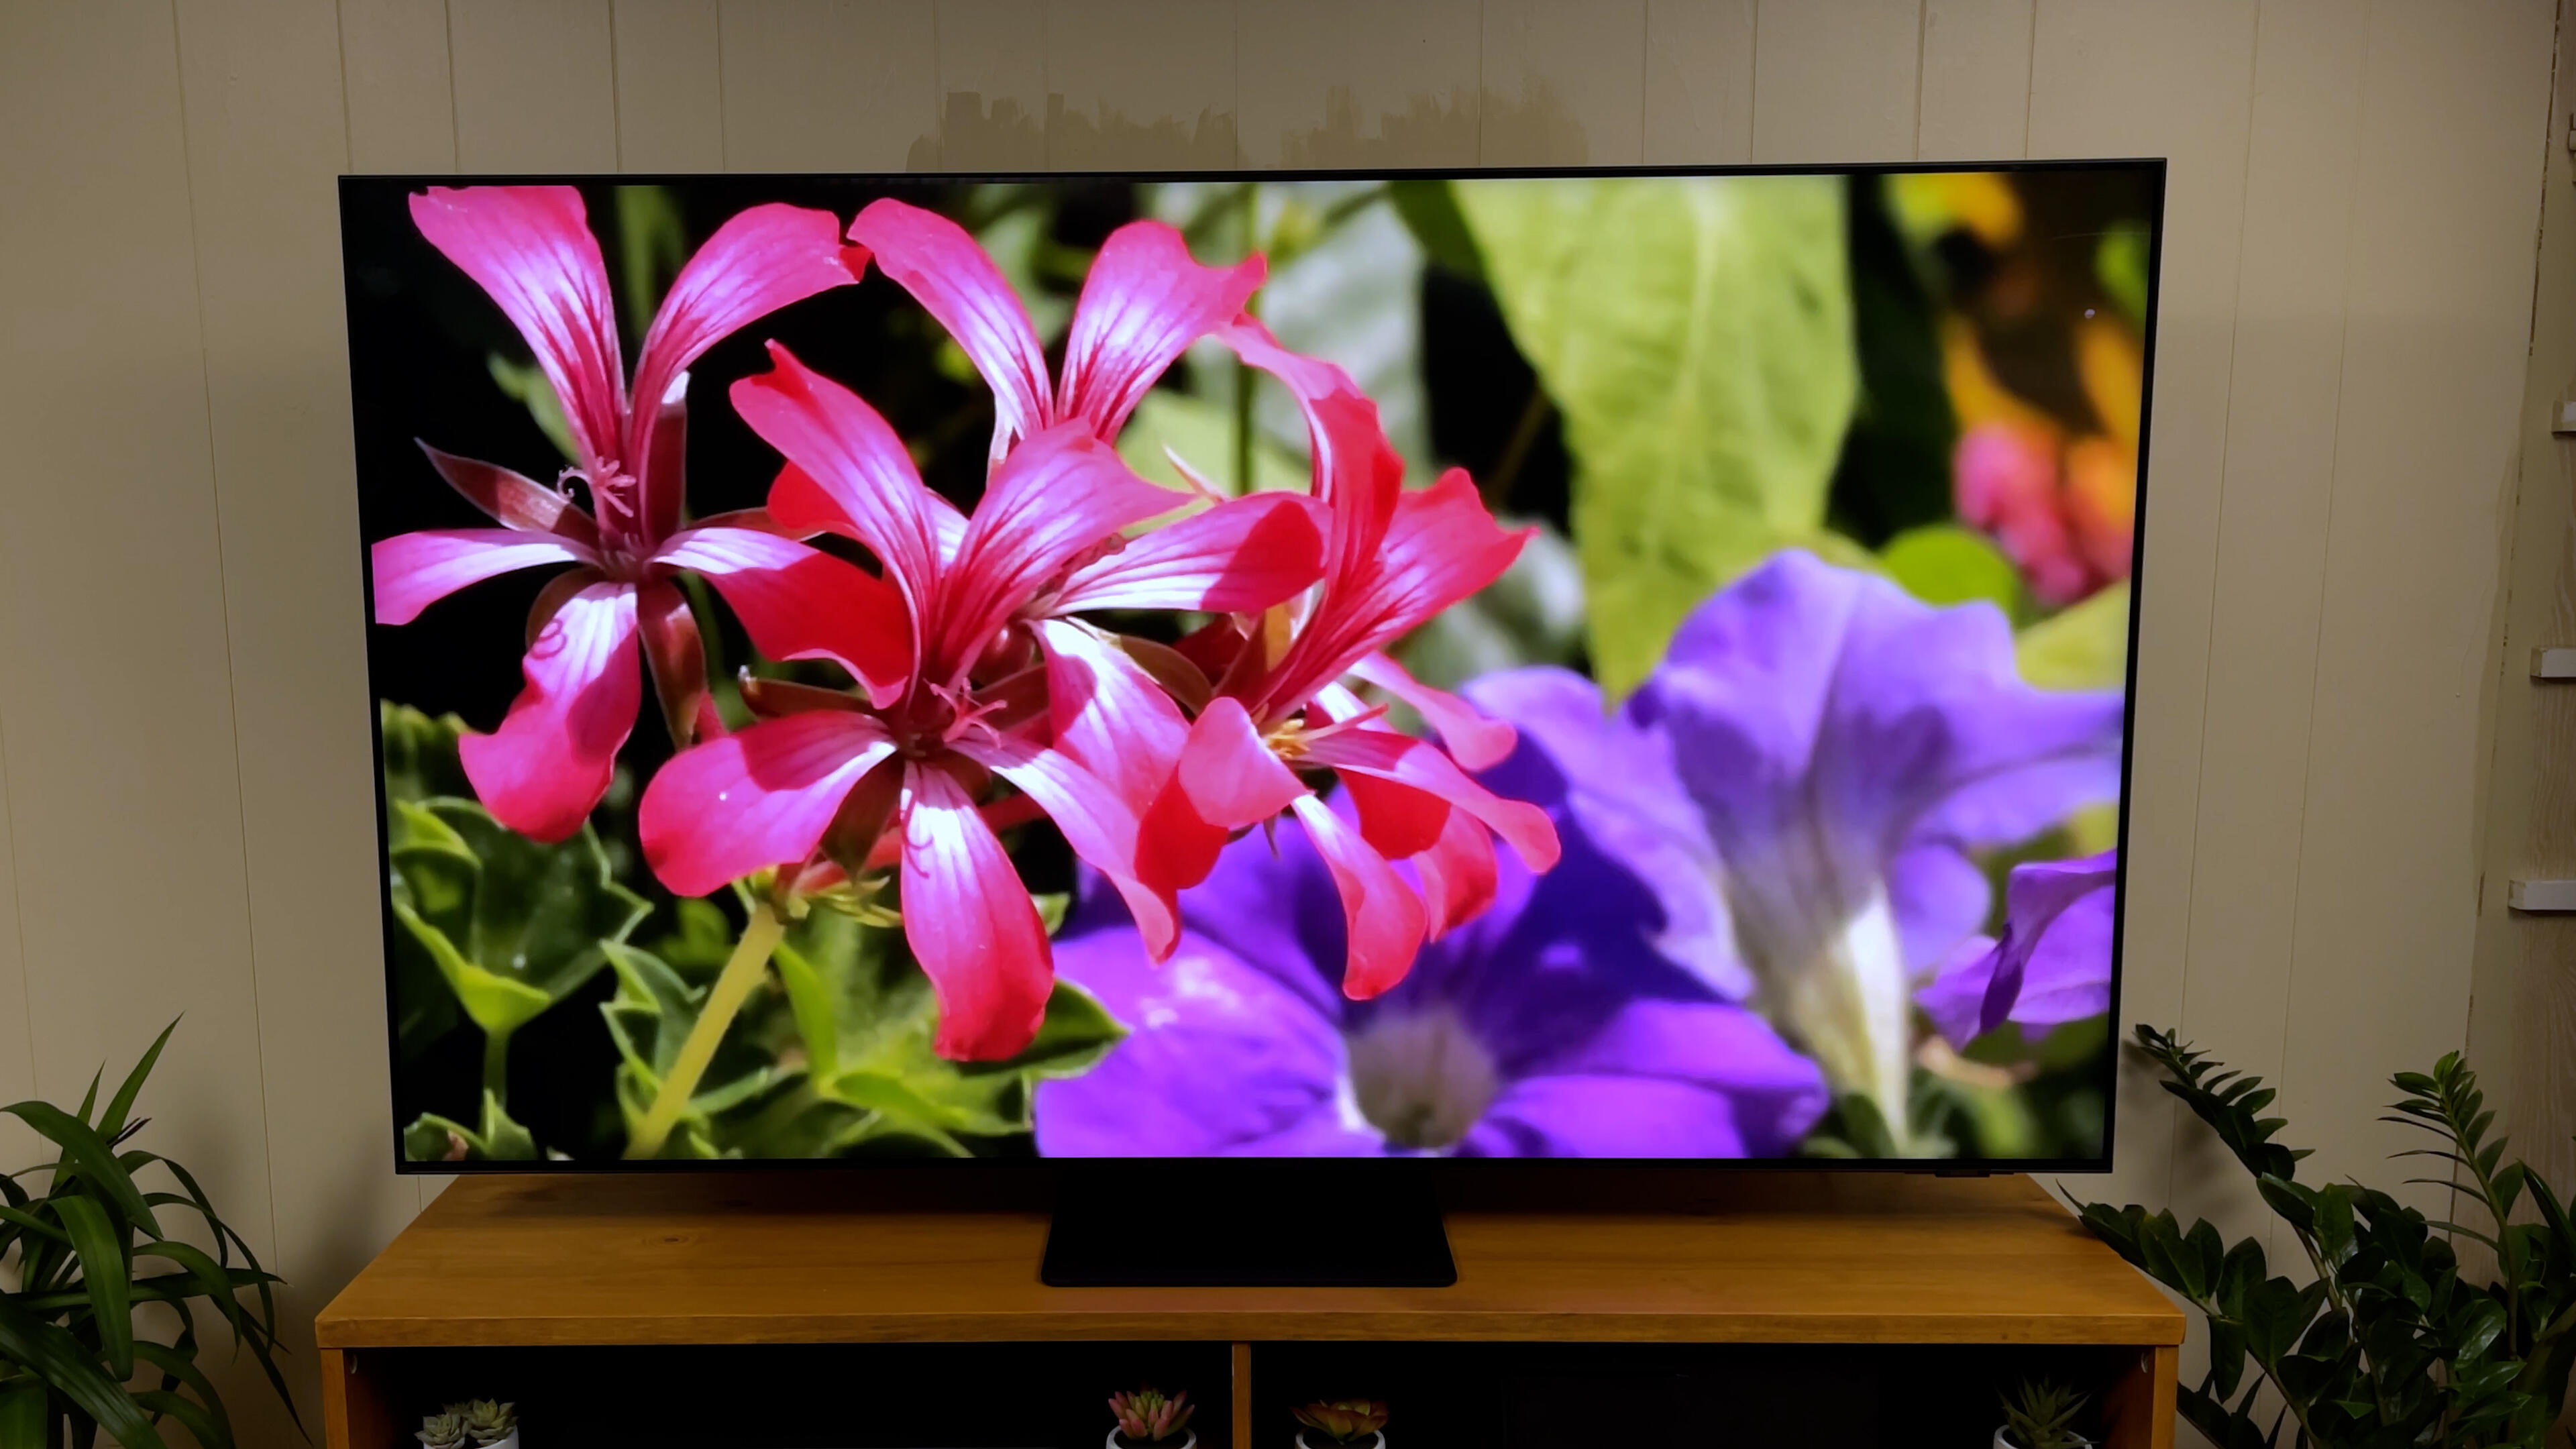 Video: Samsung QN90A Neo QLED TV: Brighter than OLED, but is it better?